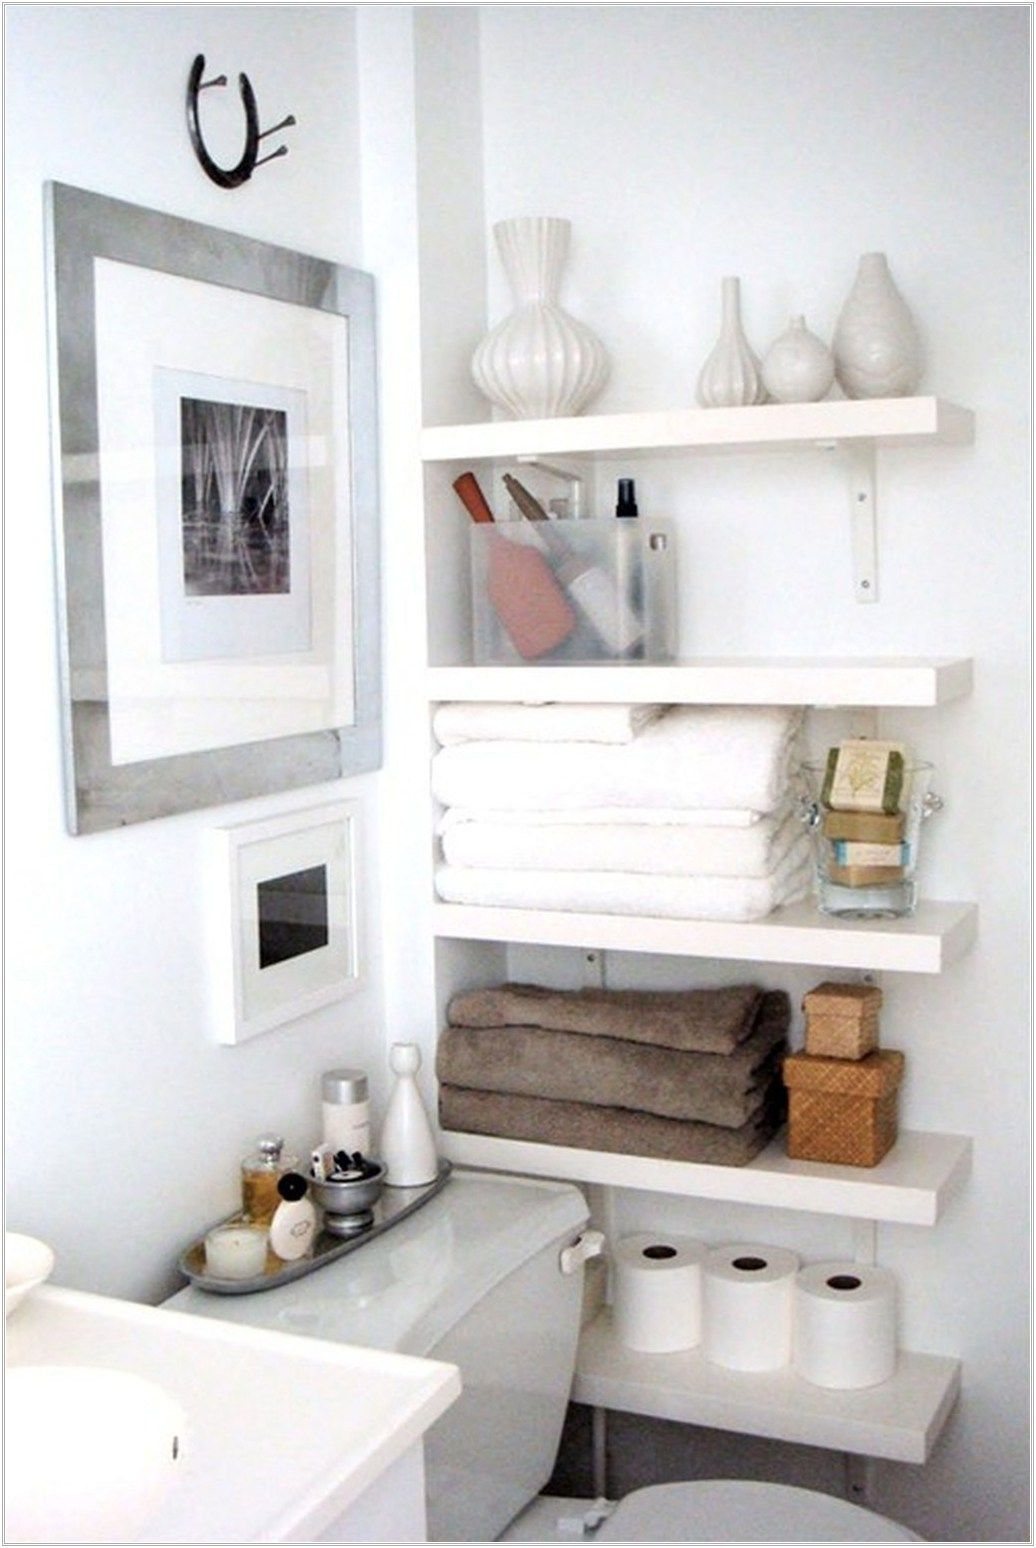 10 Coolest Bathroom Storage Ideas For An Efficient Home With Images Bathroom Storage Solutions Small Bathroom Storage Diy Bathroom Storage